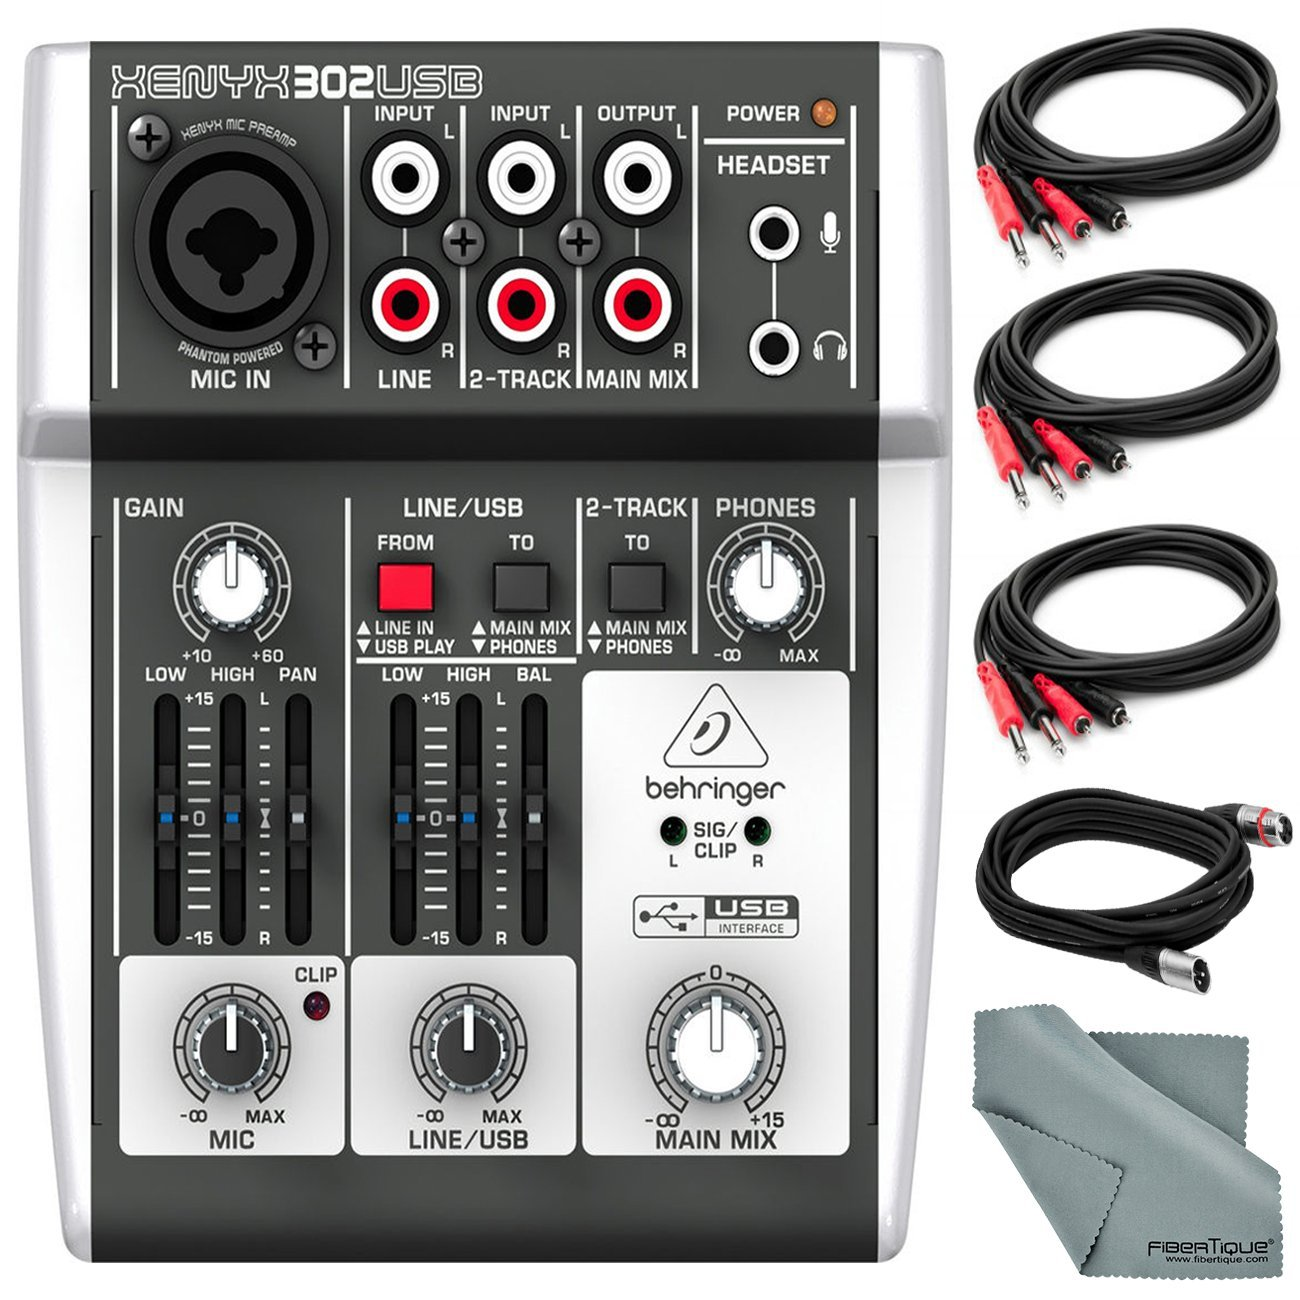 Behringer XENYX 302USB 5 Input Mixer and USB Interface & Accessory Bundle w/Cables + Fibertiqe Cloth